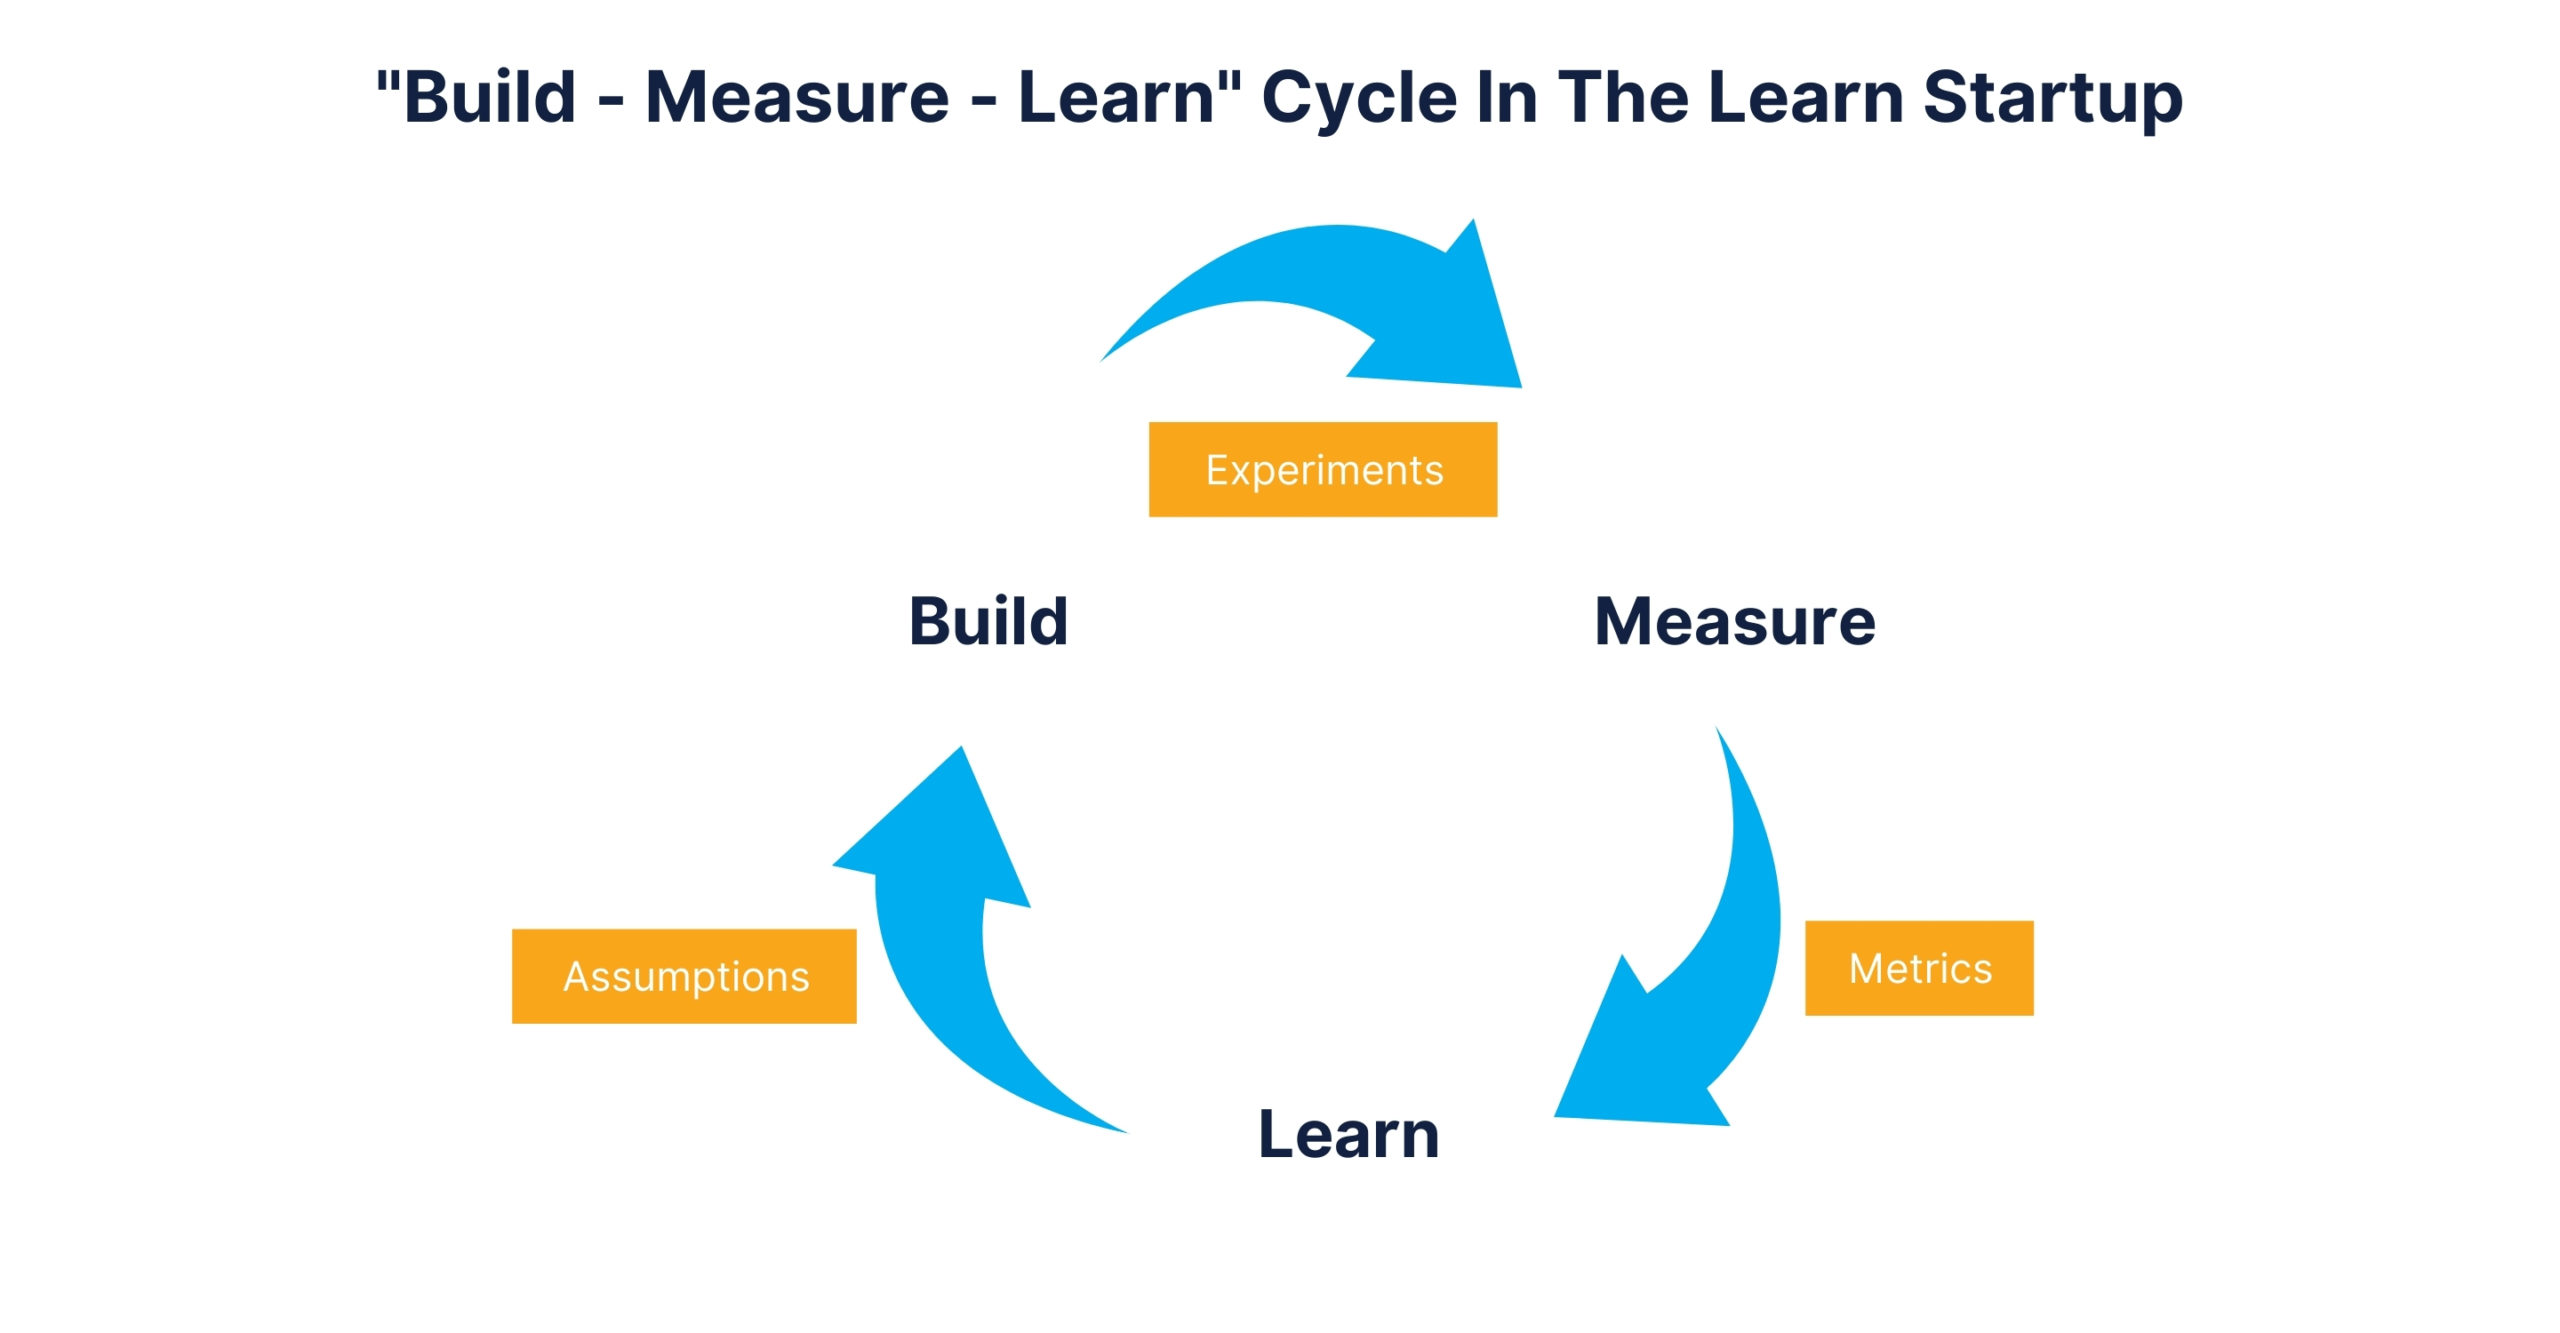 Build - Measure - Learn Cycle In The Learn Startup